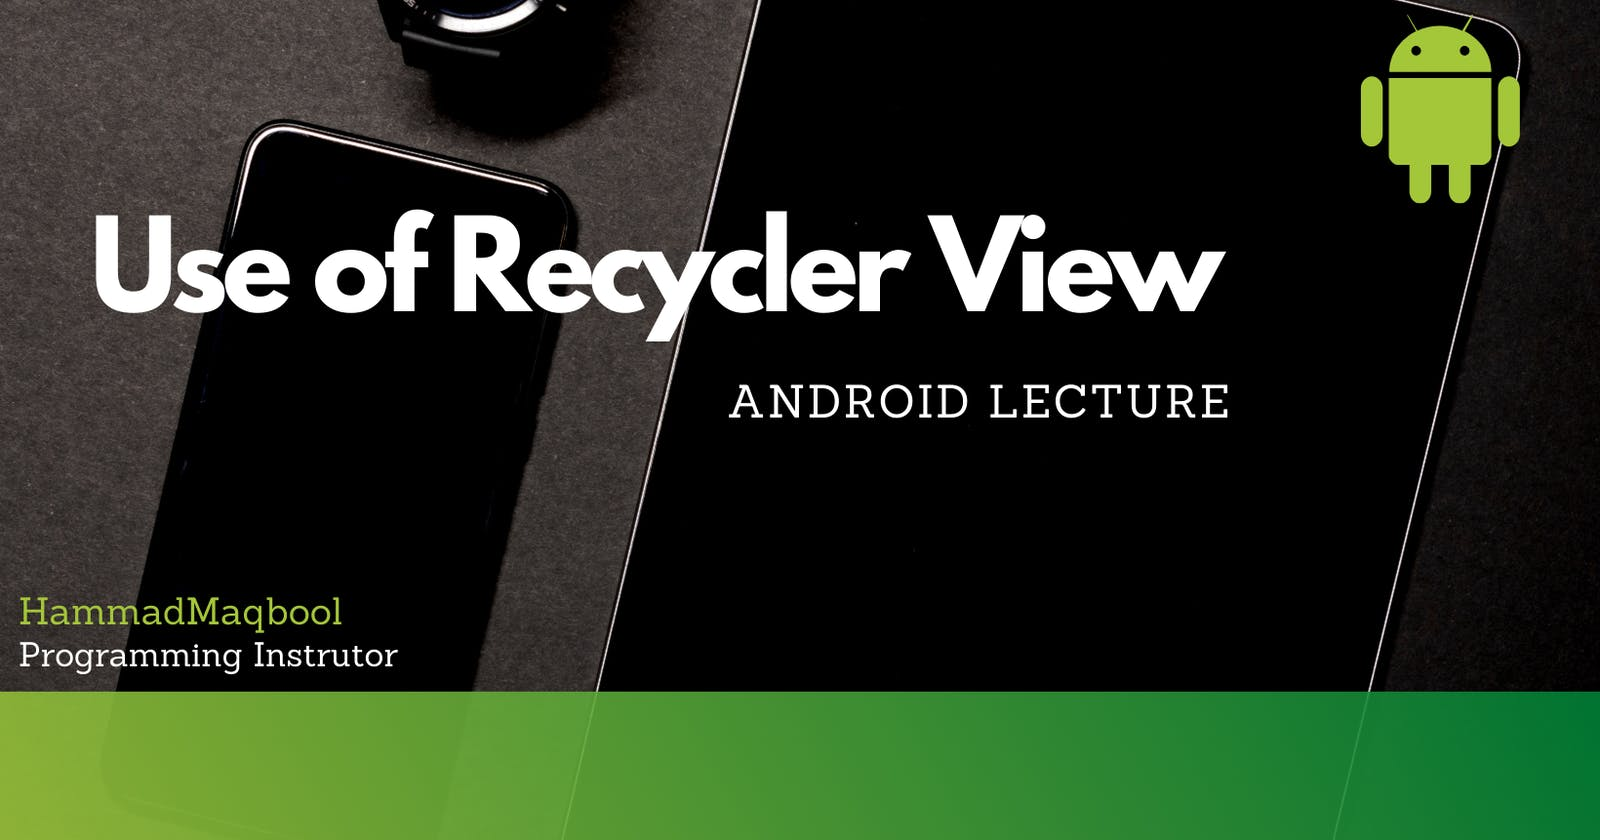 Use of Recycler View in Android